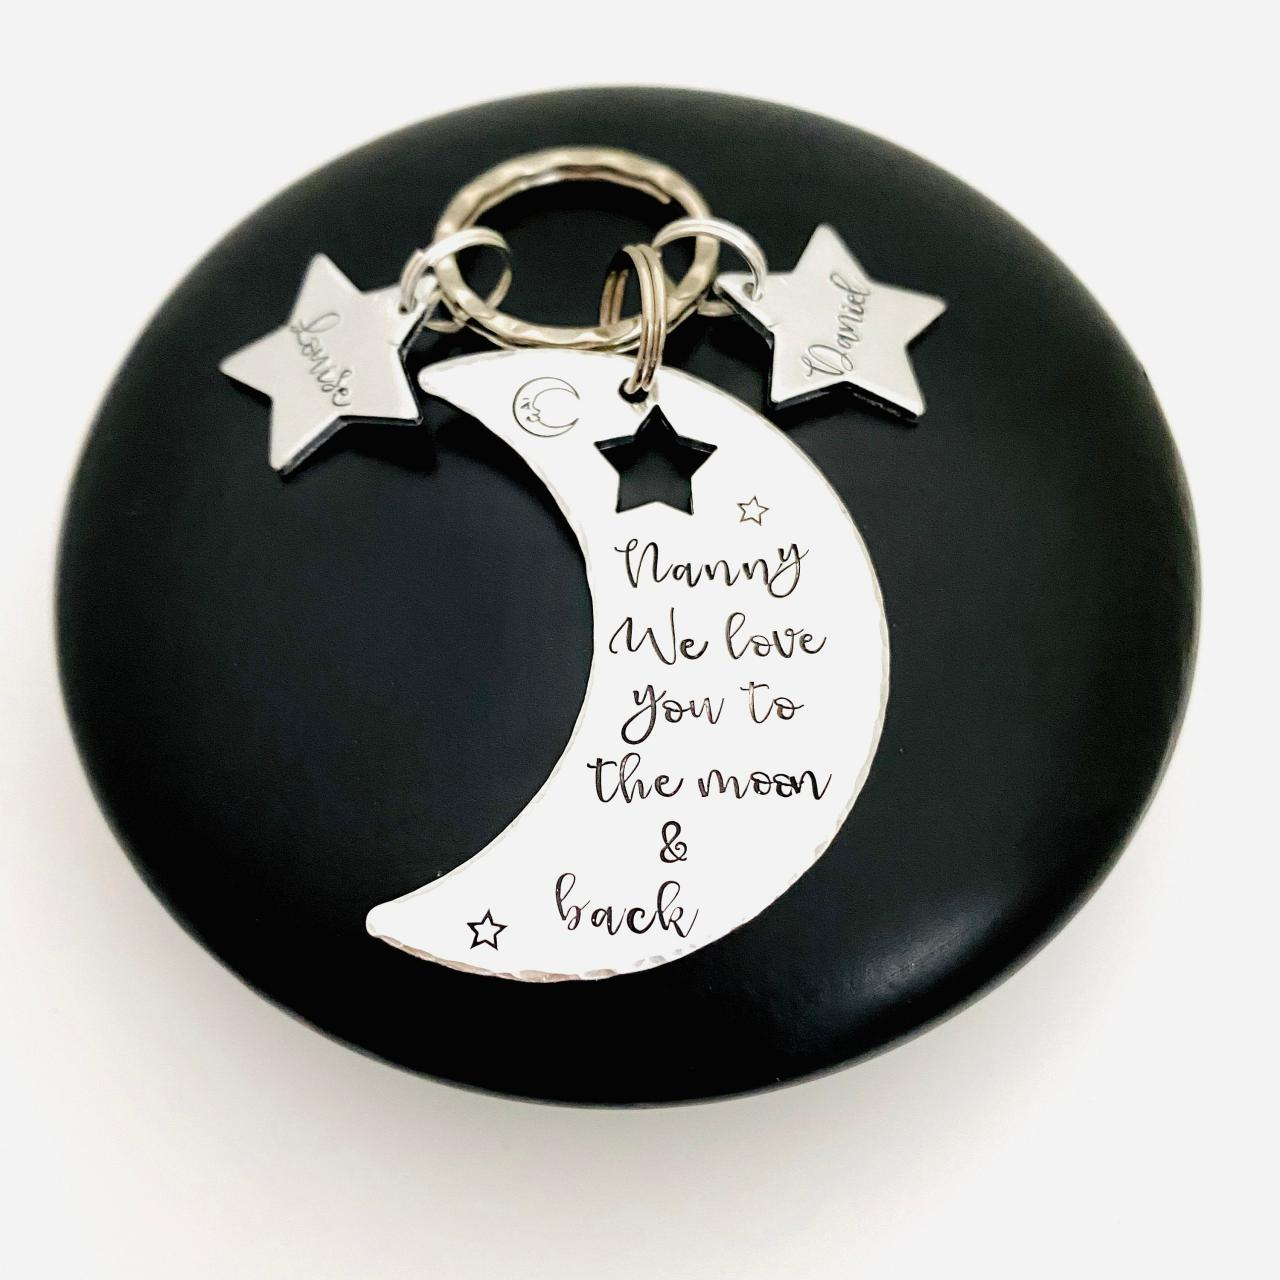 Personalised Keyring For Nanny, Love You To The Moon And Back, Personalized Nana Keychain, Gift For Grandma, Mothers Day Gift, Gift For Gran..